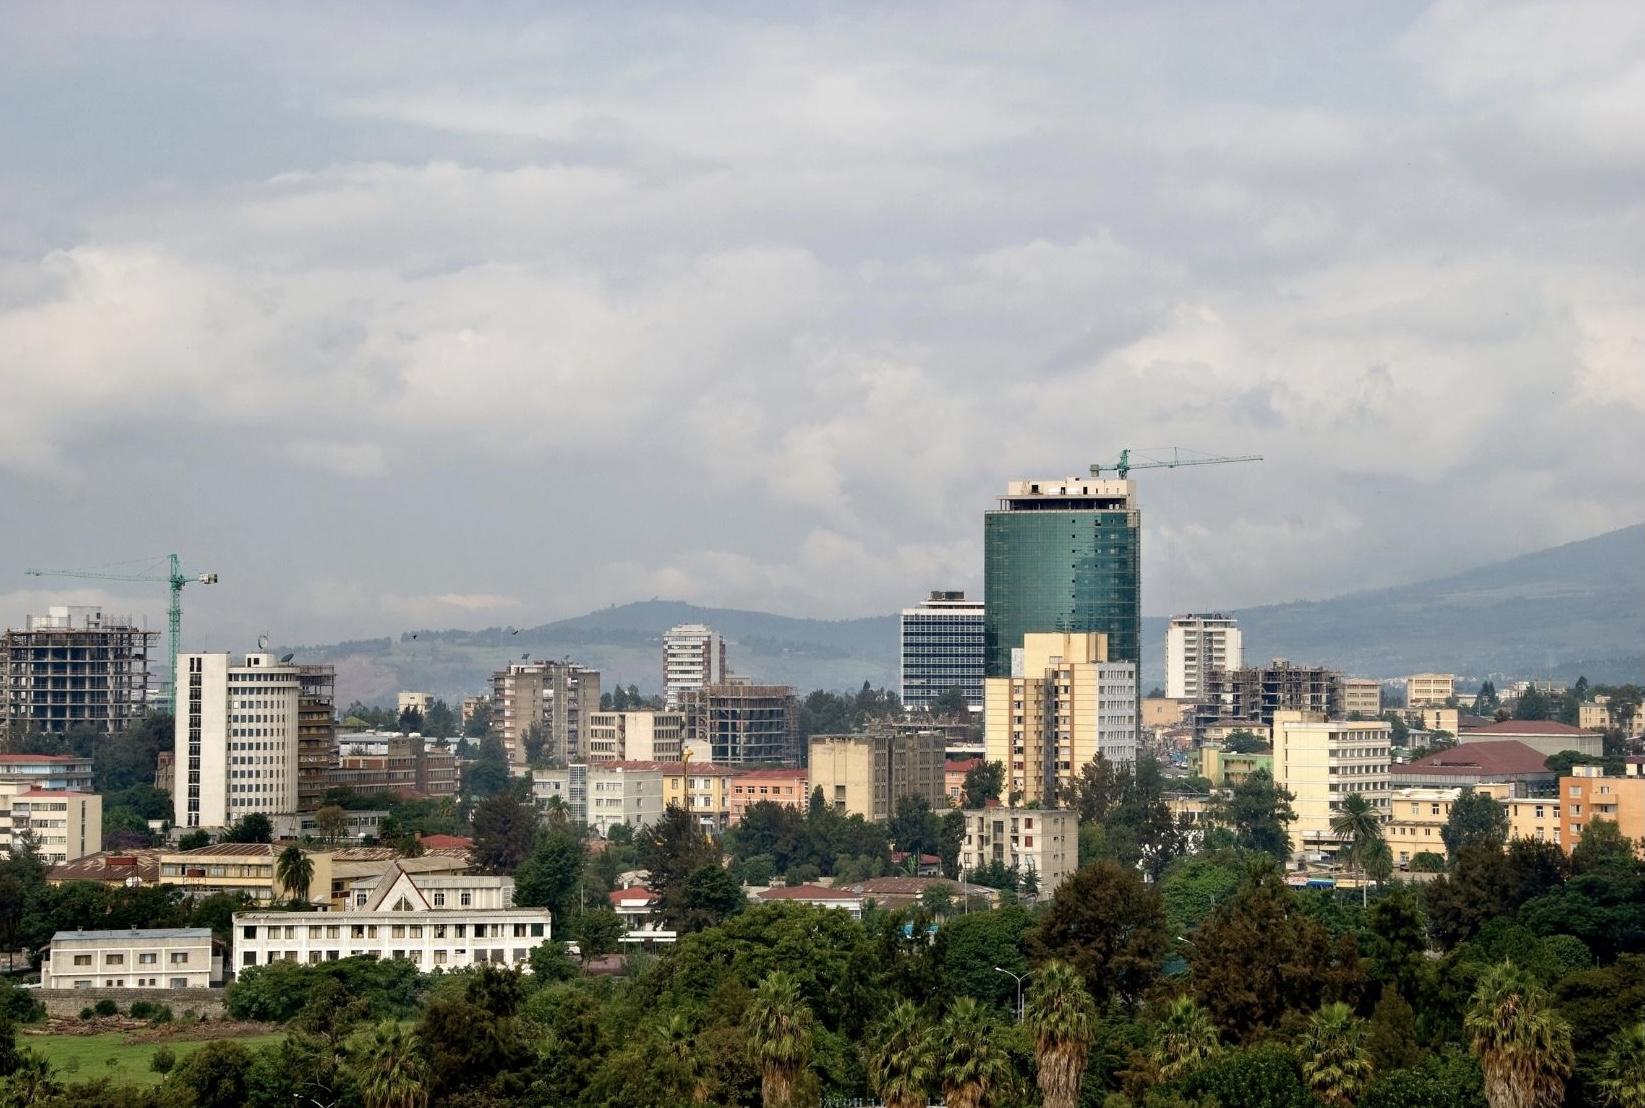 AU is headquartered in Addis Ababa